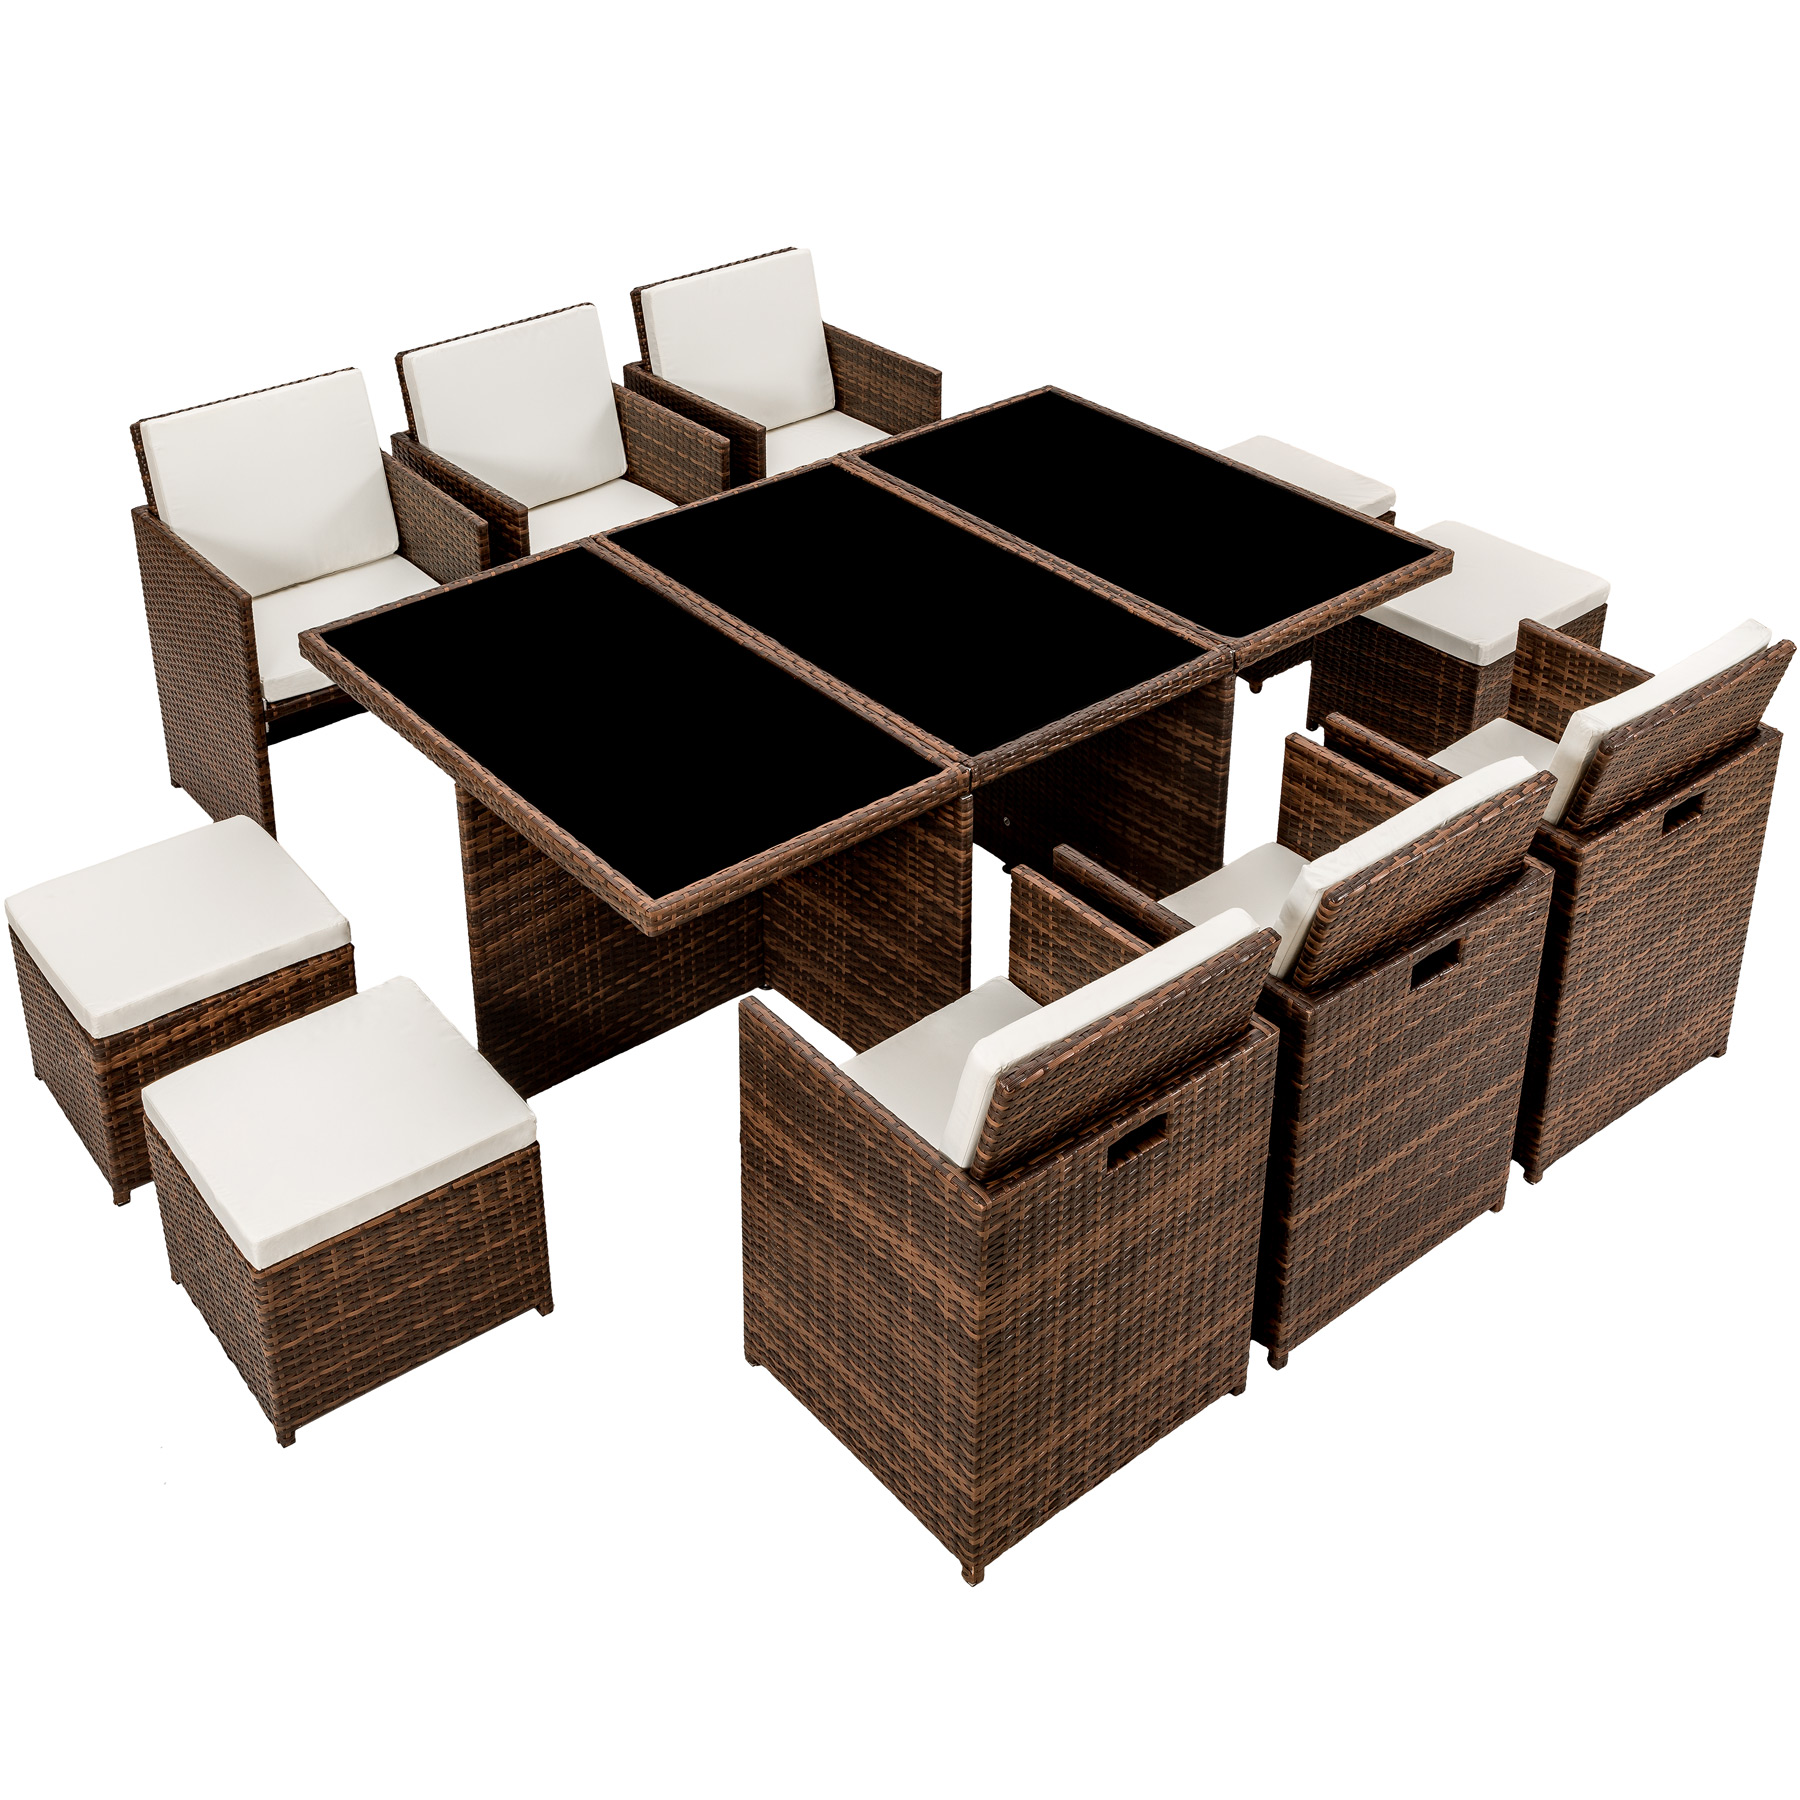 poly rattan gartenm bel set garnitur sitzgarnitur. Black Bedroom Furniture Sets. Home Design Ideas